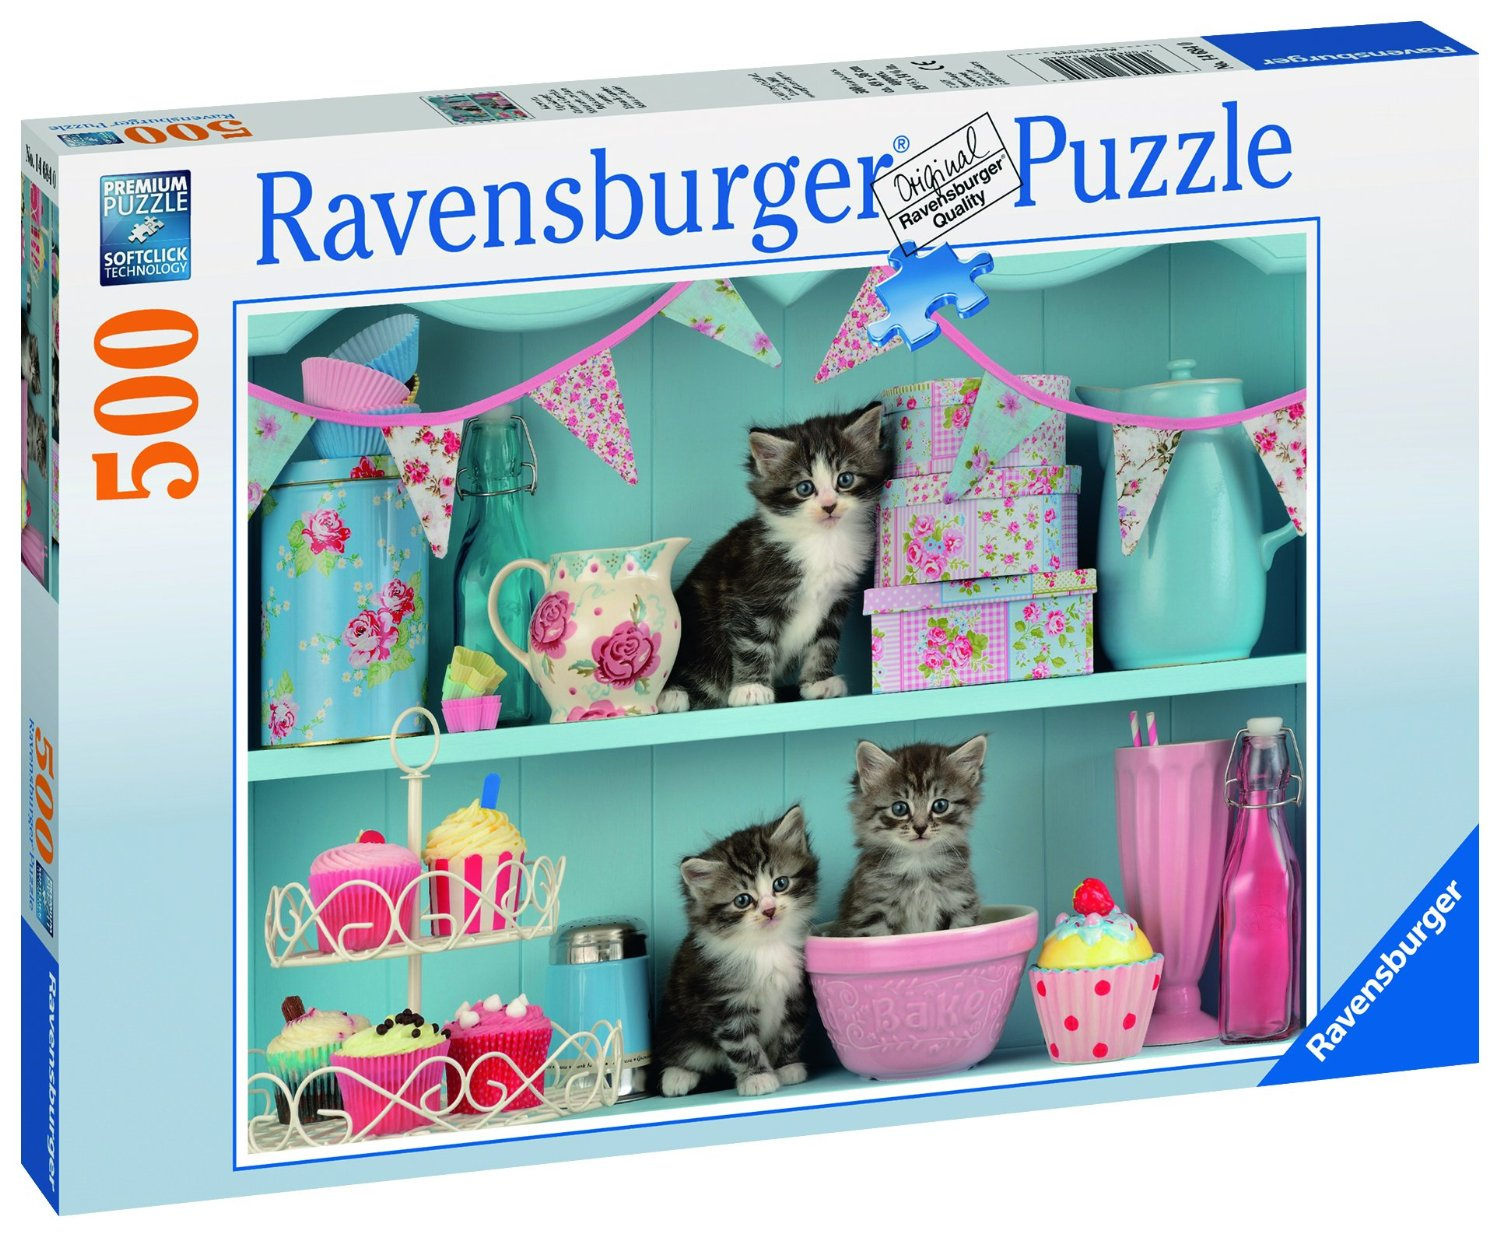 katzen im cupcakeregal 500 teile ravensburger puzzle. Black Bedroom Furniture Sets. Home Design Ideas